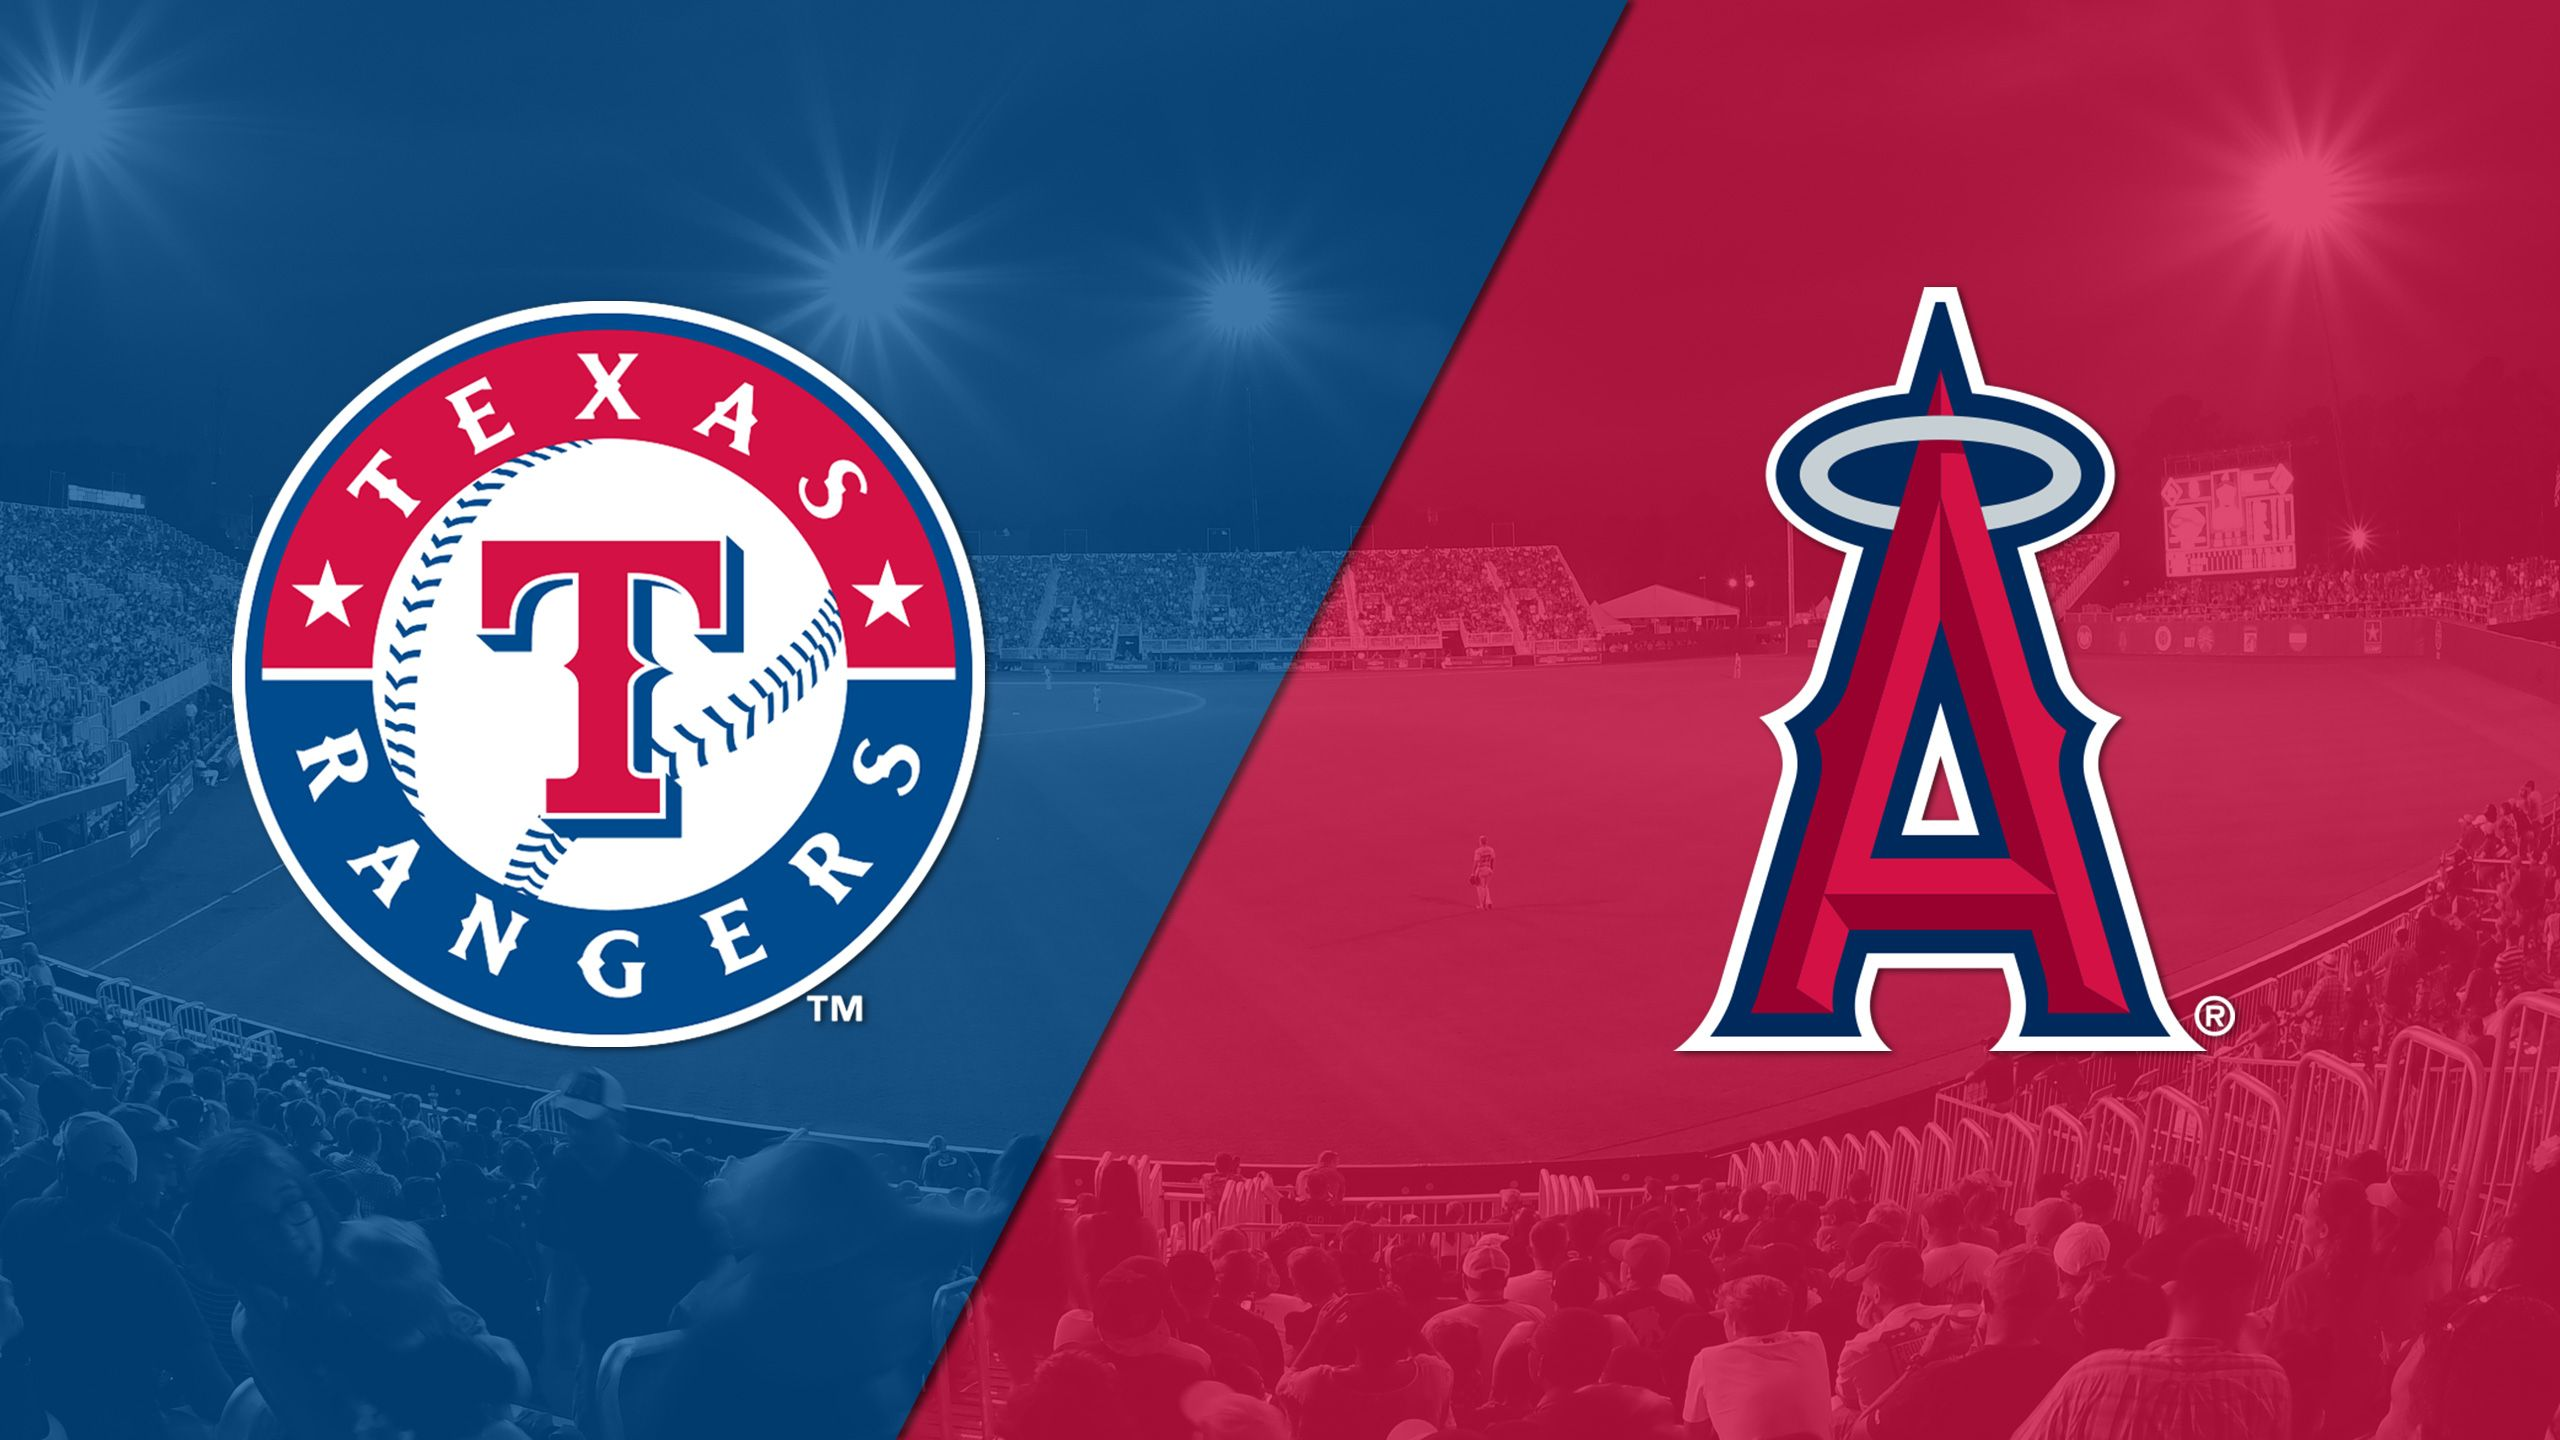 In Spanish - Texas Rangers vs. Los Angeles Angels of Anaheim